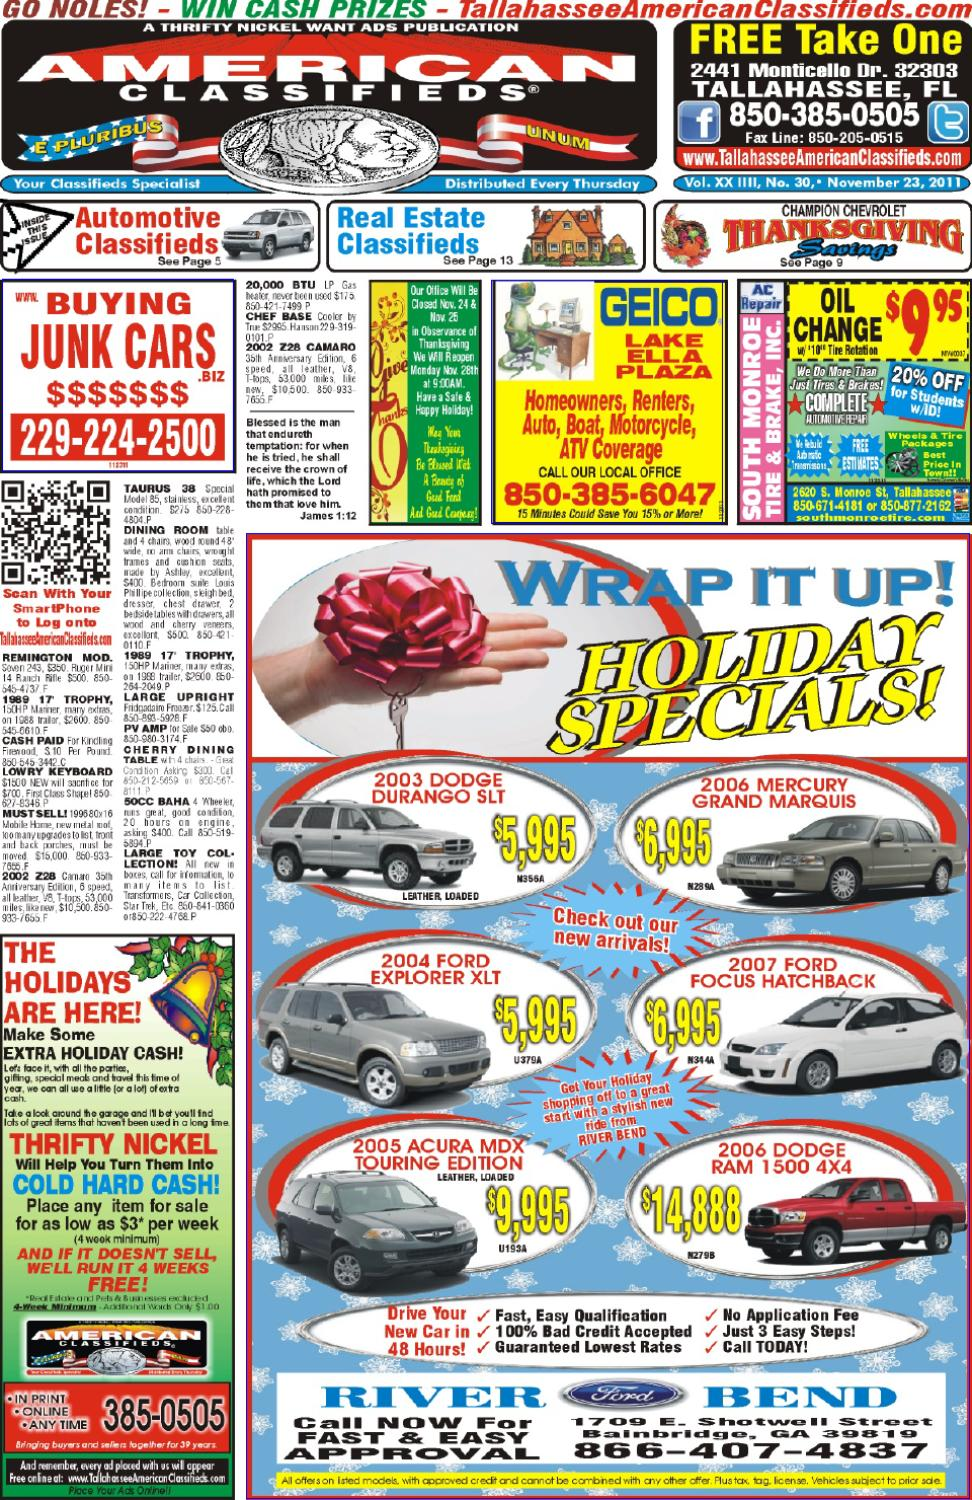 Tallahassee american classifieds issue 11 23 11 by - Craigslist tallahassee farm and garden ...